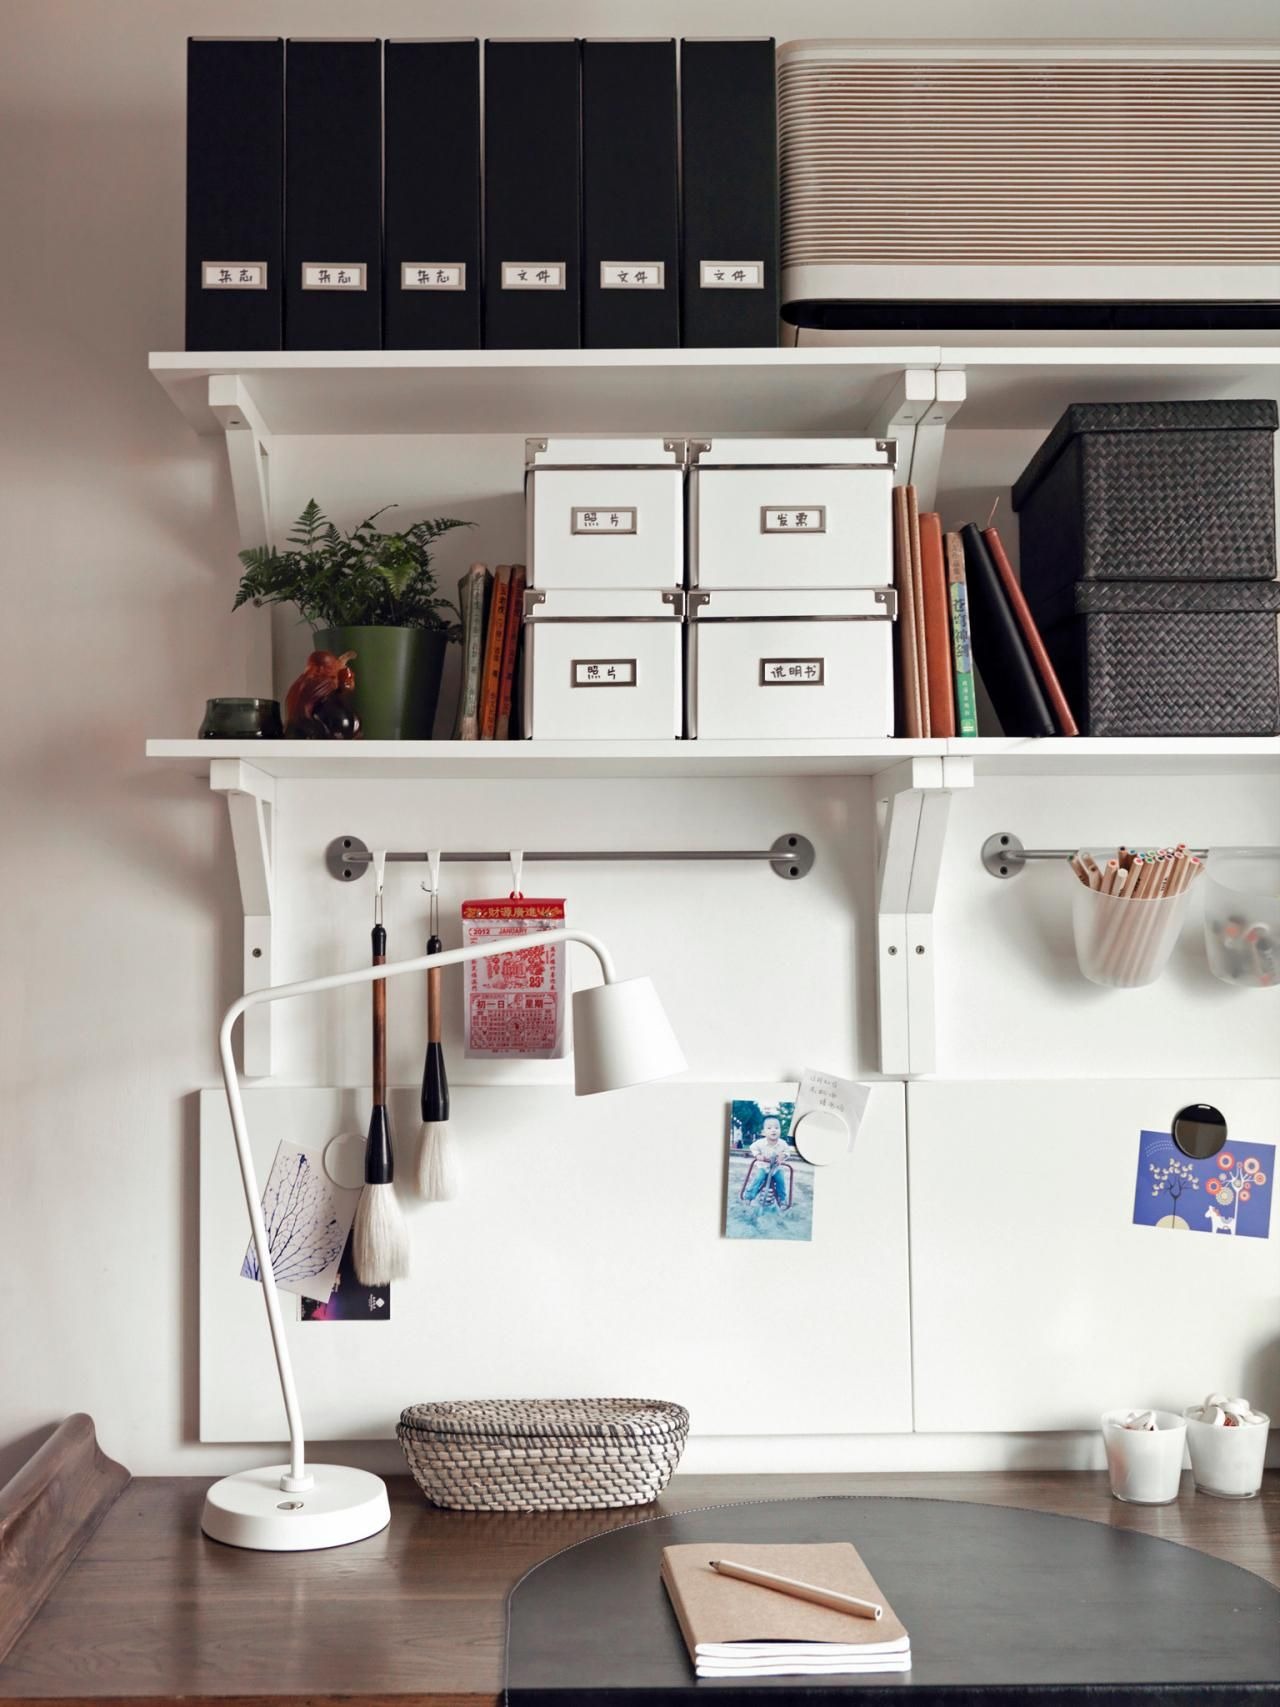 Dorm Room Styles: Desk Organization Ideas For Dorm Rooms >> Http://www.hgtv